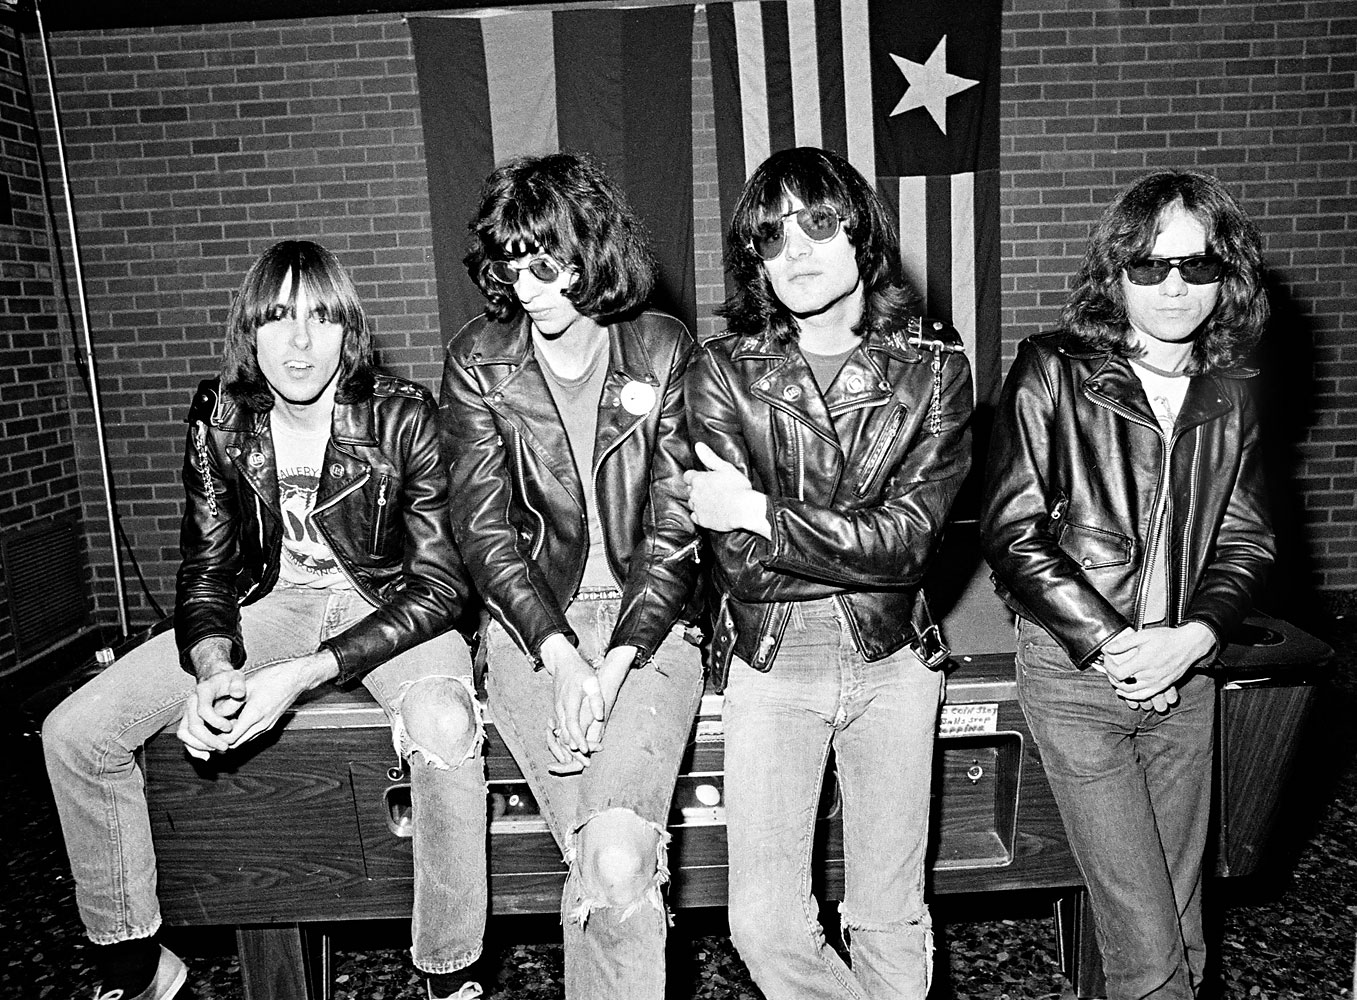 From left to right, Johnny Ramone, Joey Ramone, Dee Dee Ramone, and Tommy Ramone photographed in San Francisco, Jan. 31, 1978.